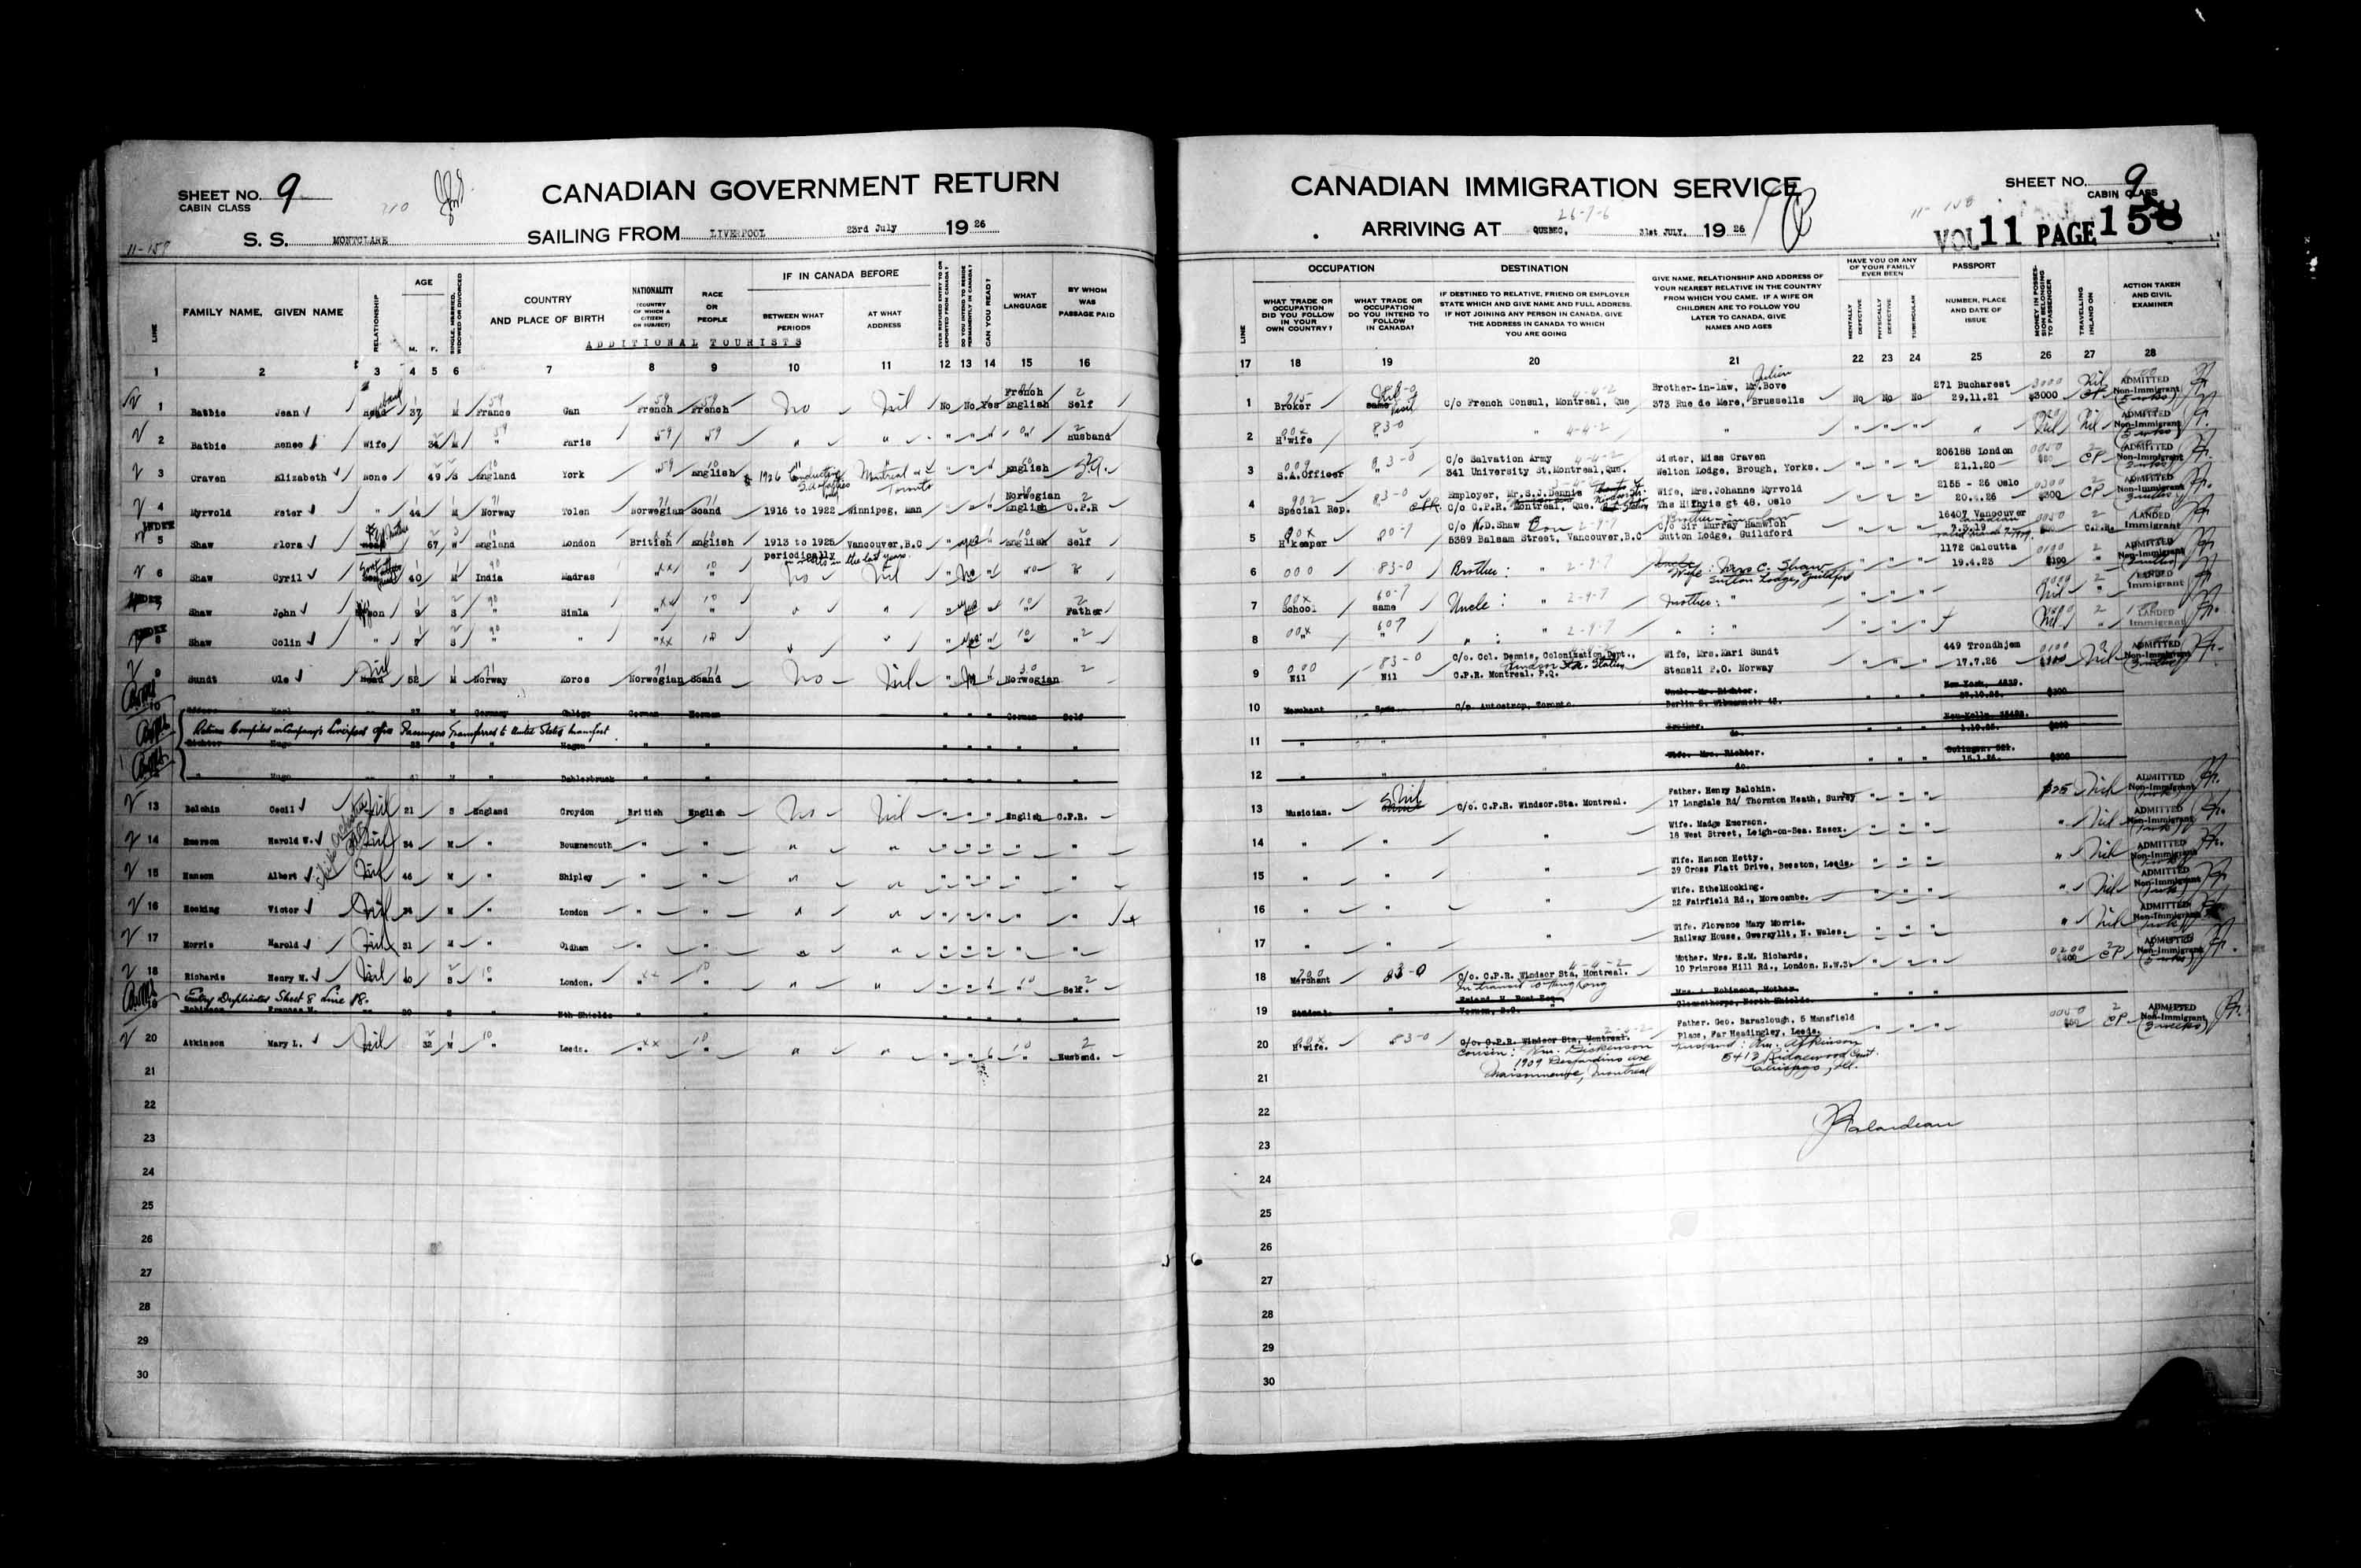 Title: Passenger Lists: Quebec City (1925-1935) - Mikan Number: 134839 - Microform: t-14725